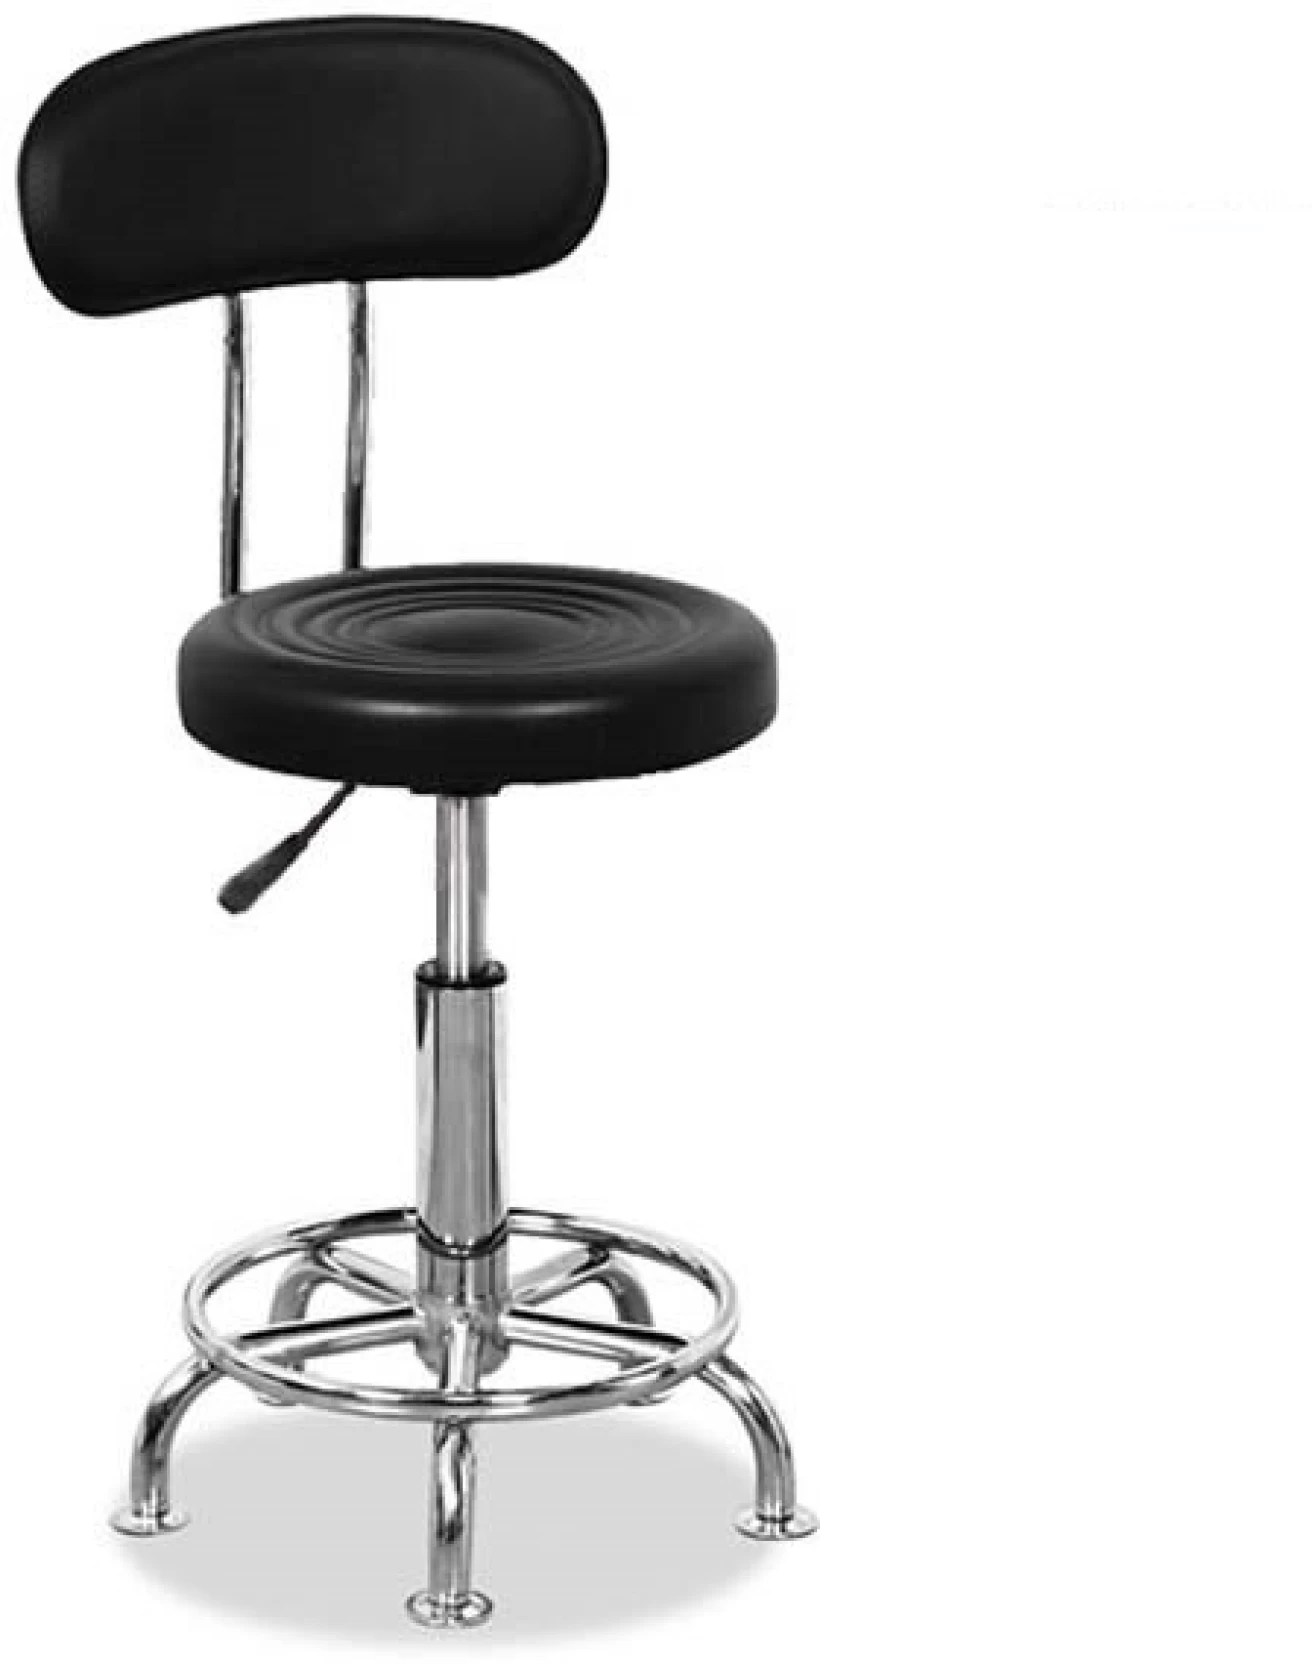 Mobile Chair Lakdi Medical Mobile Doctor S Stools Office Student Computer Pu Leather Metal Bar Chair By Lakdi The Furniture Company Leather Bar Chair